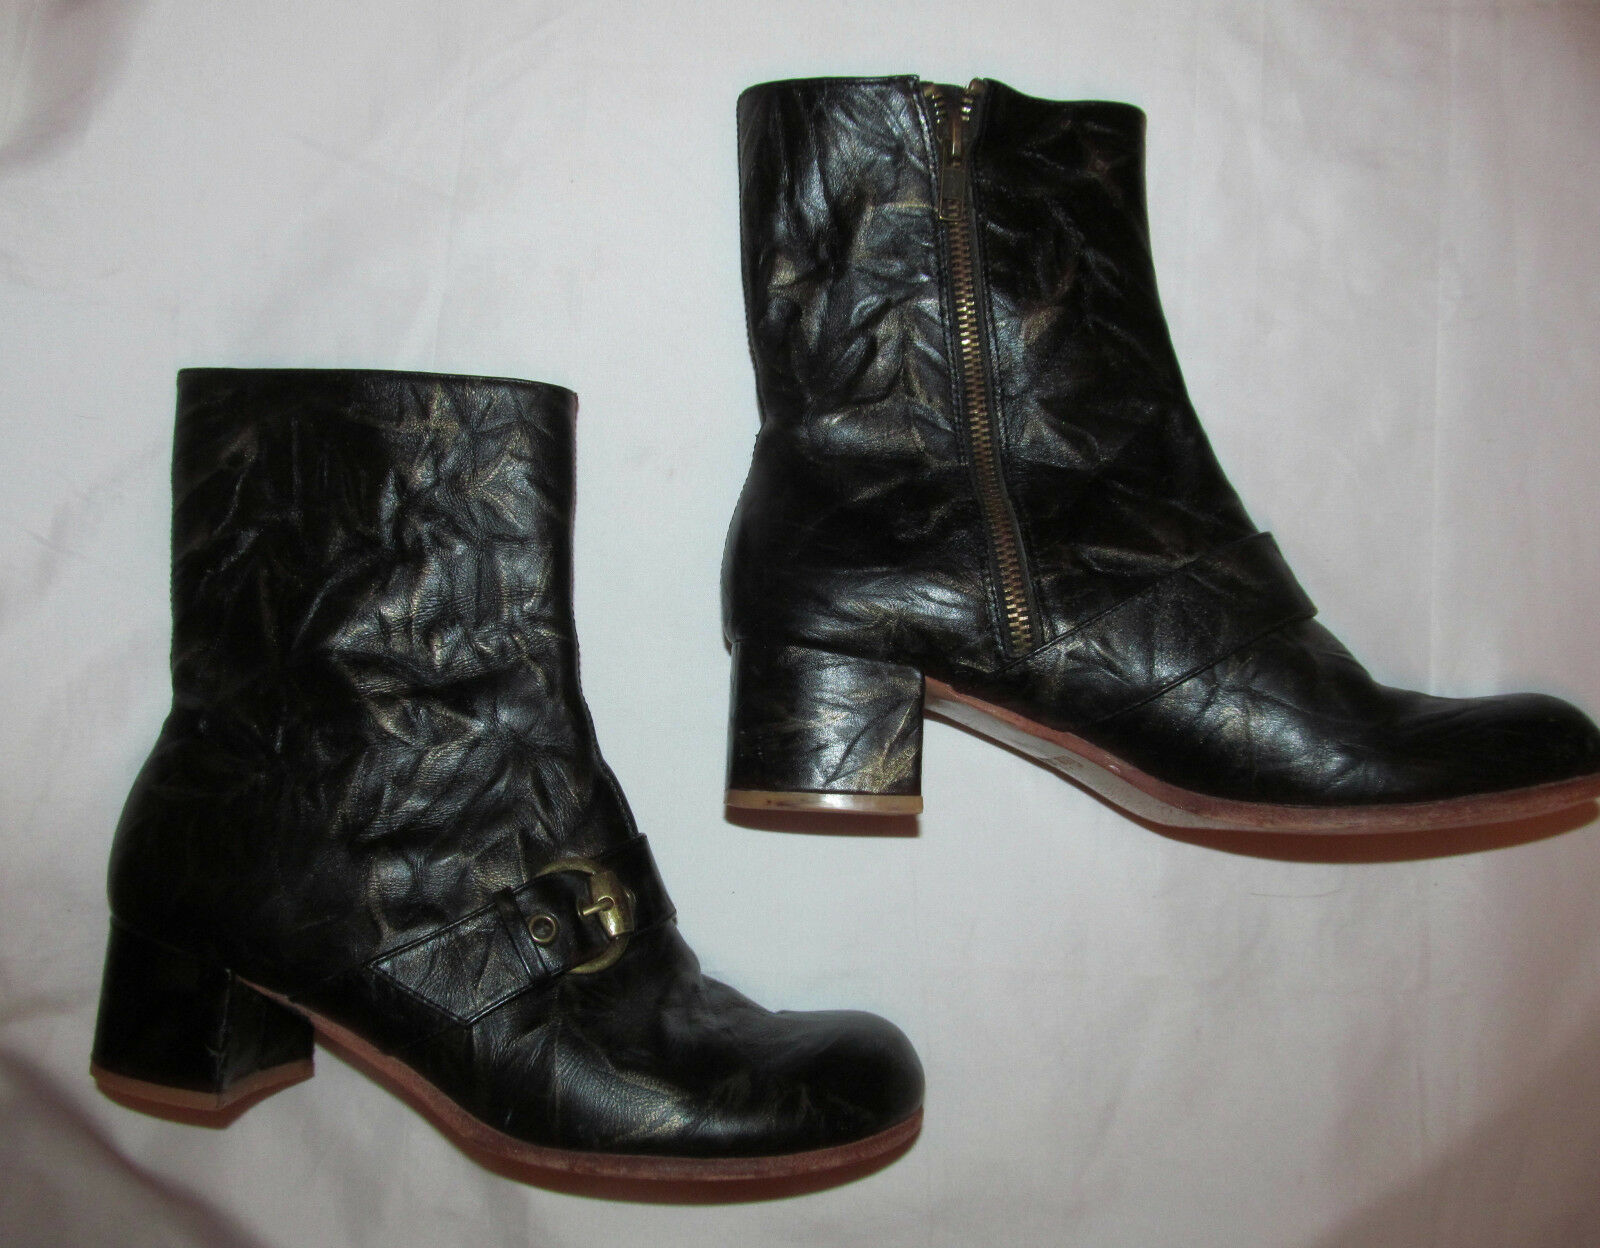 GEE WAWA crinkle strap schwarz and gold frnt strap crinkle buckle zip Stiefel 8 b3da3d